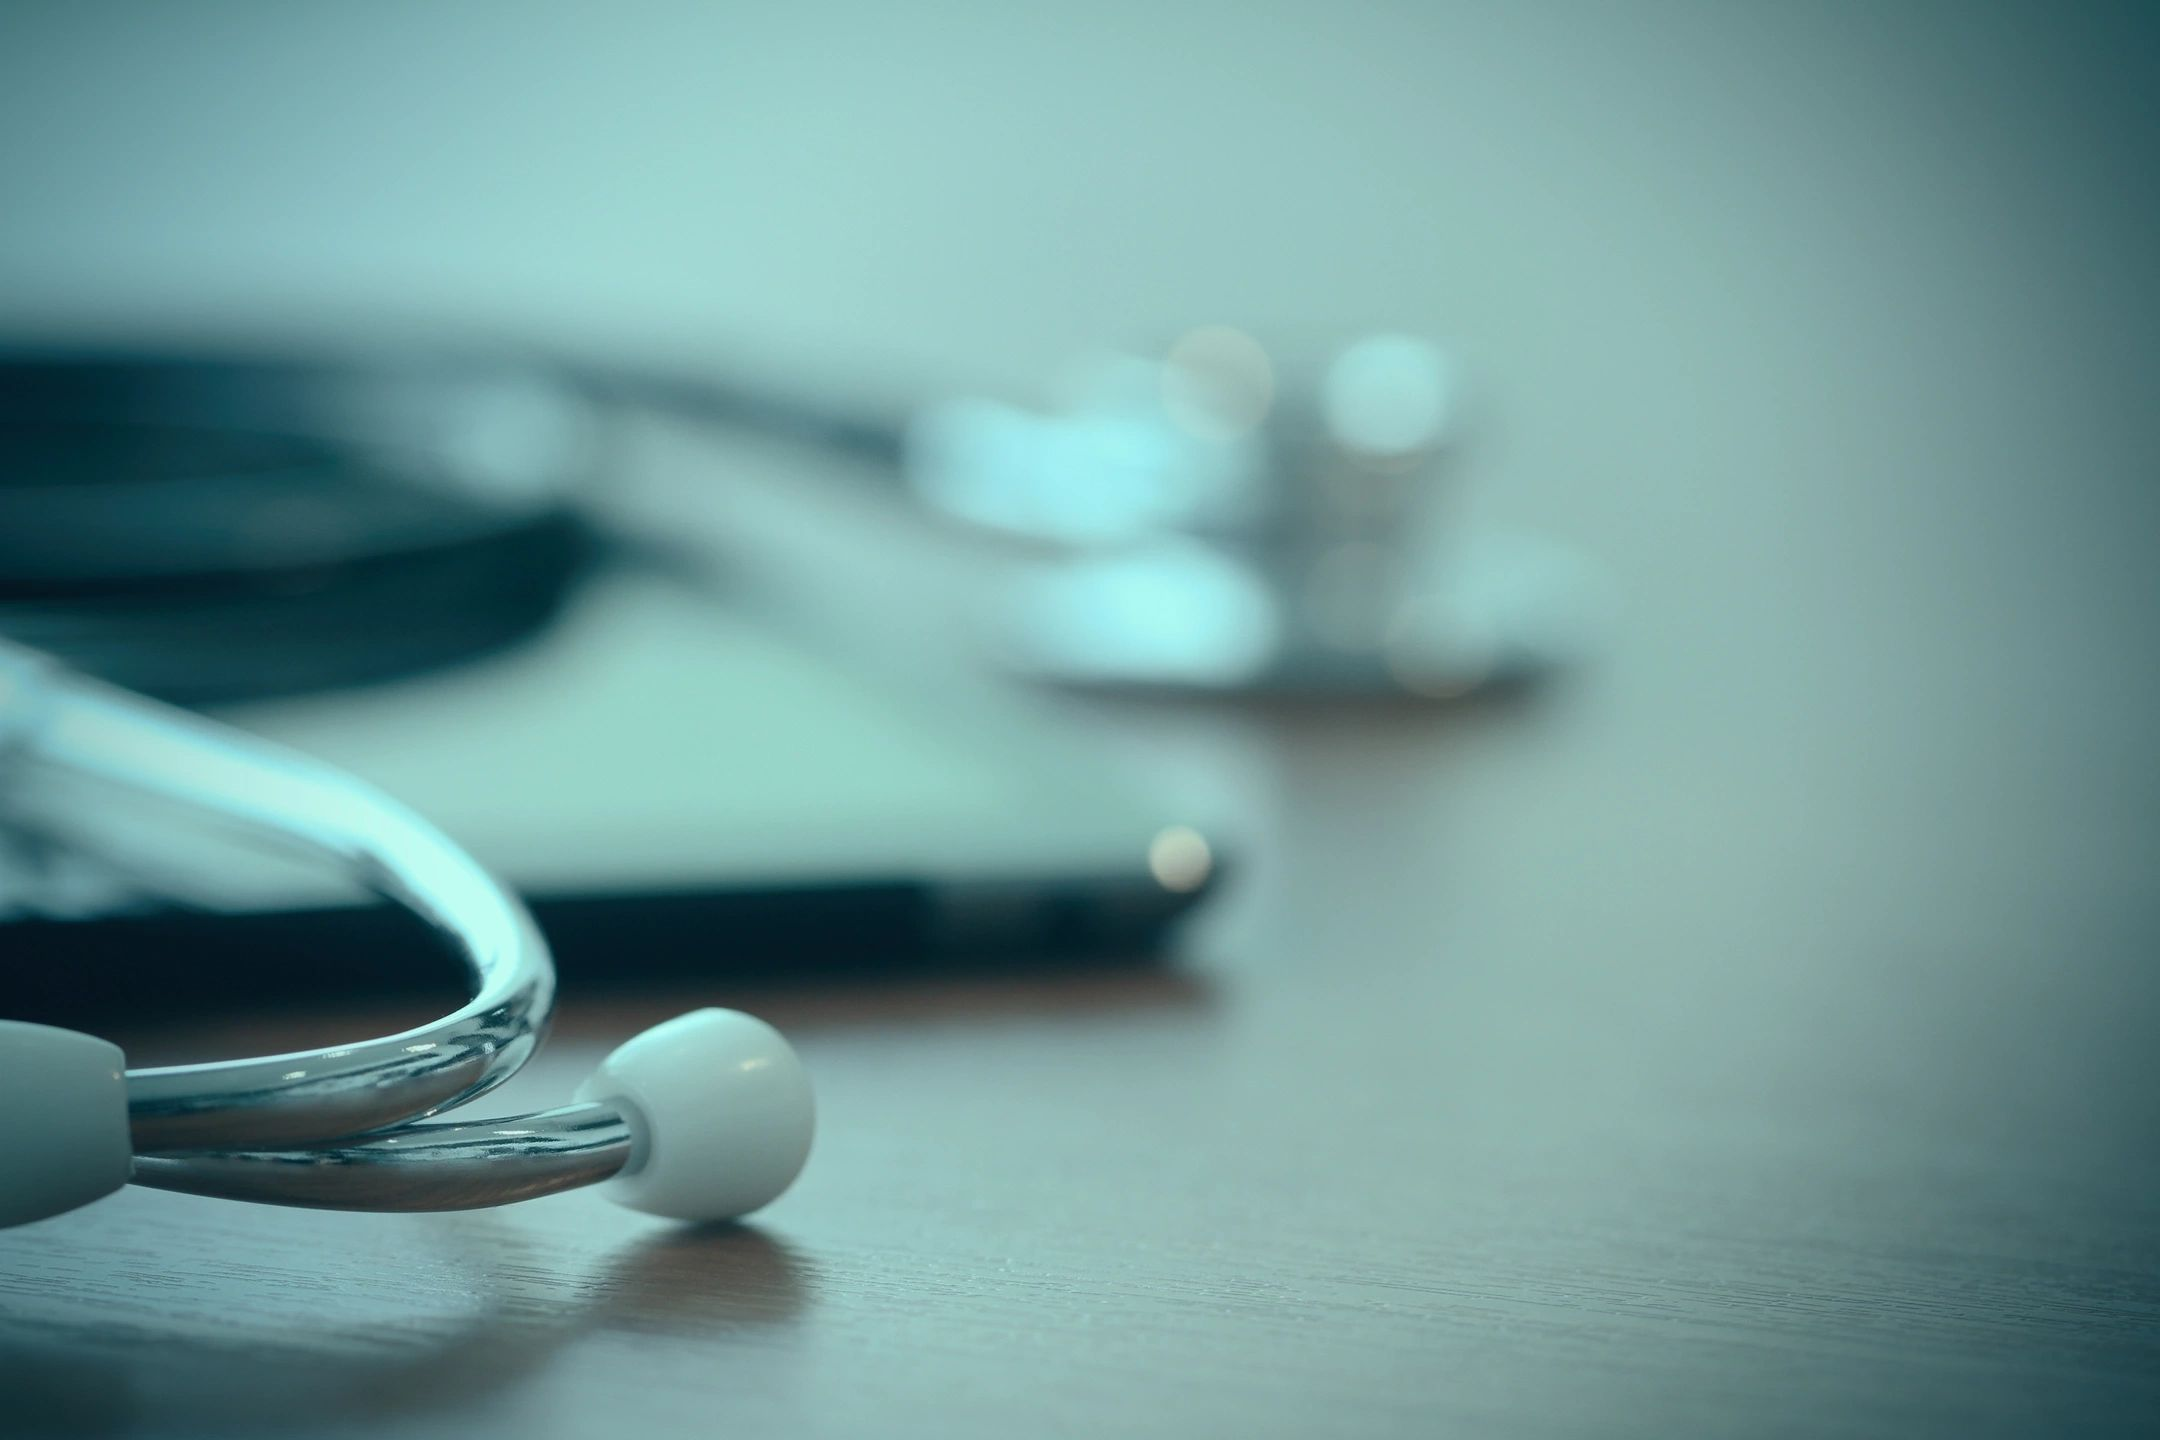 Hearing Loss as a Major Health Issue